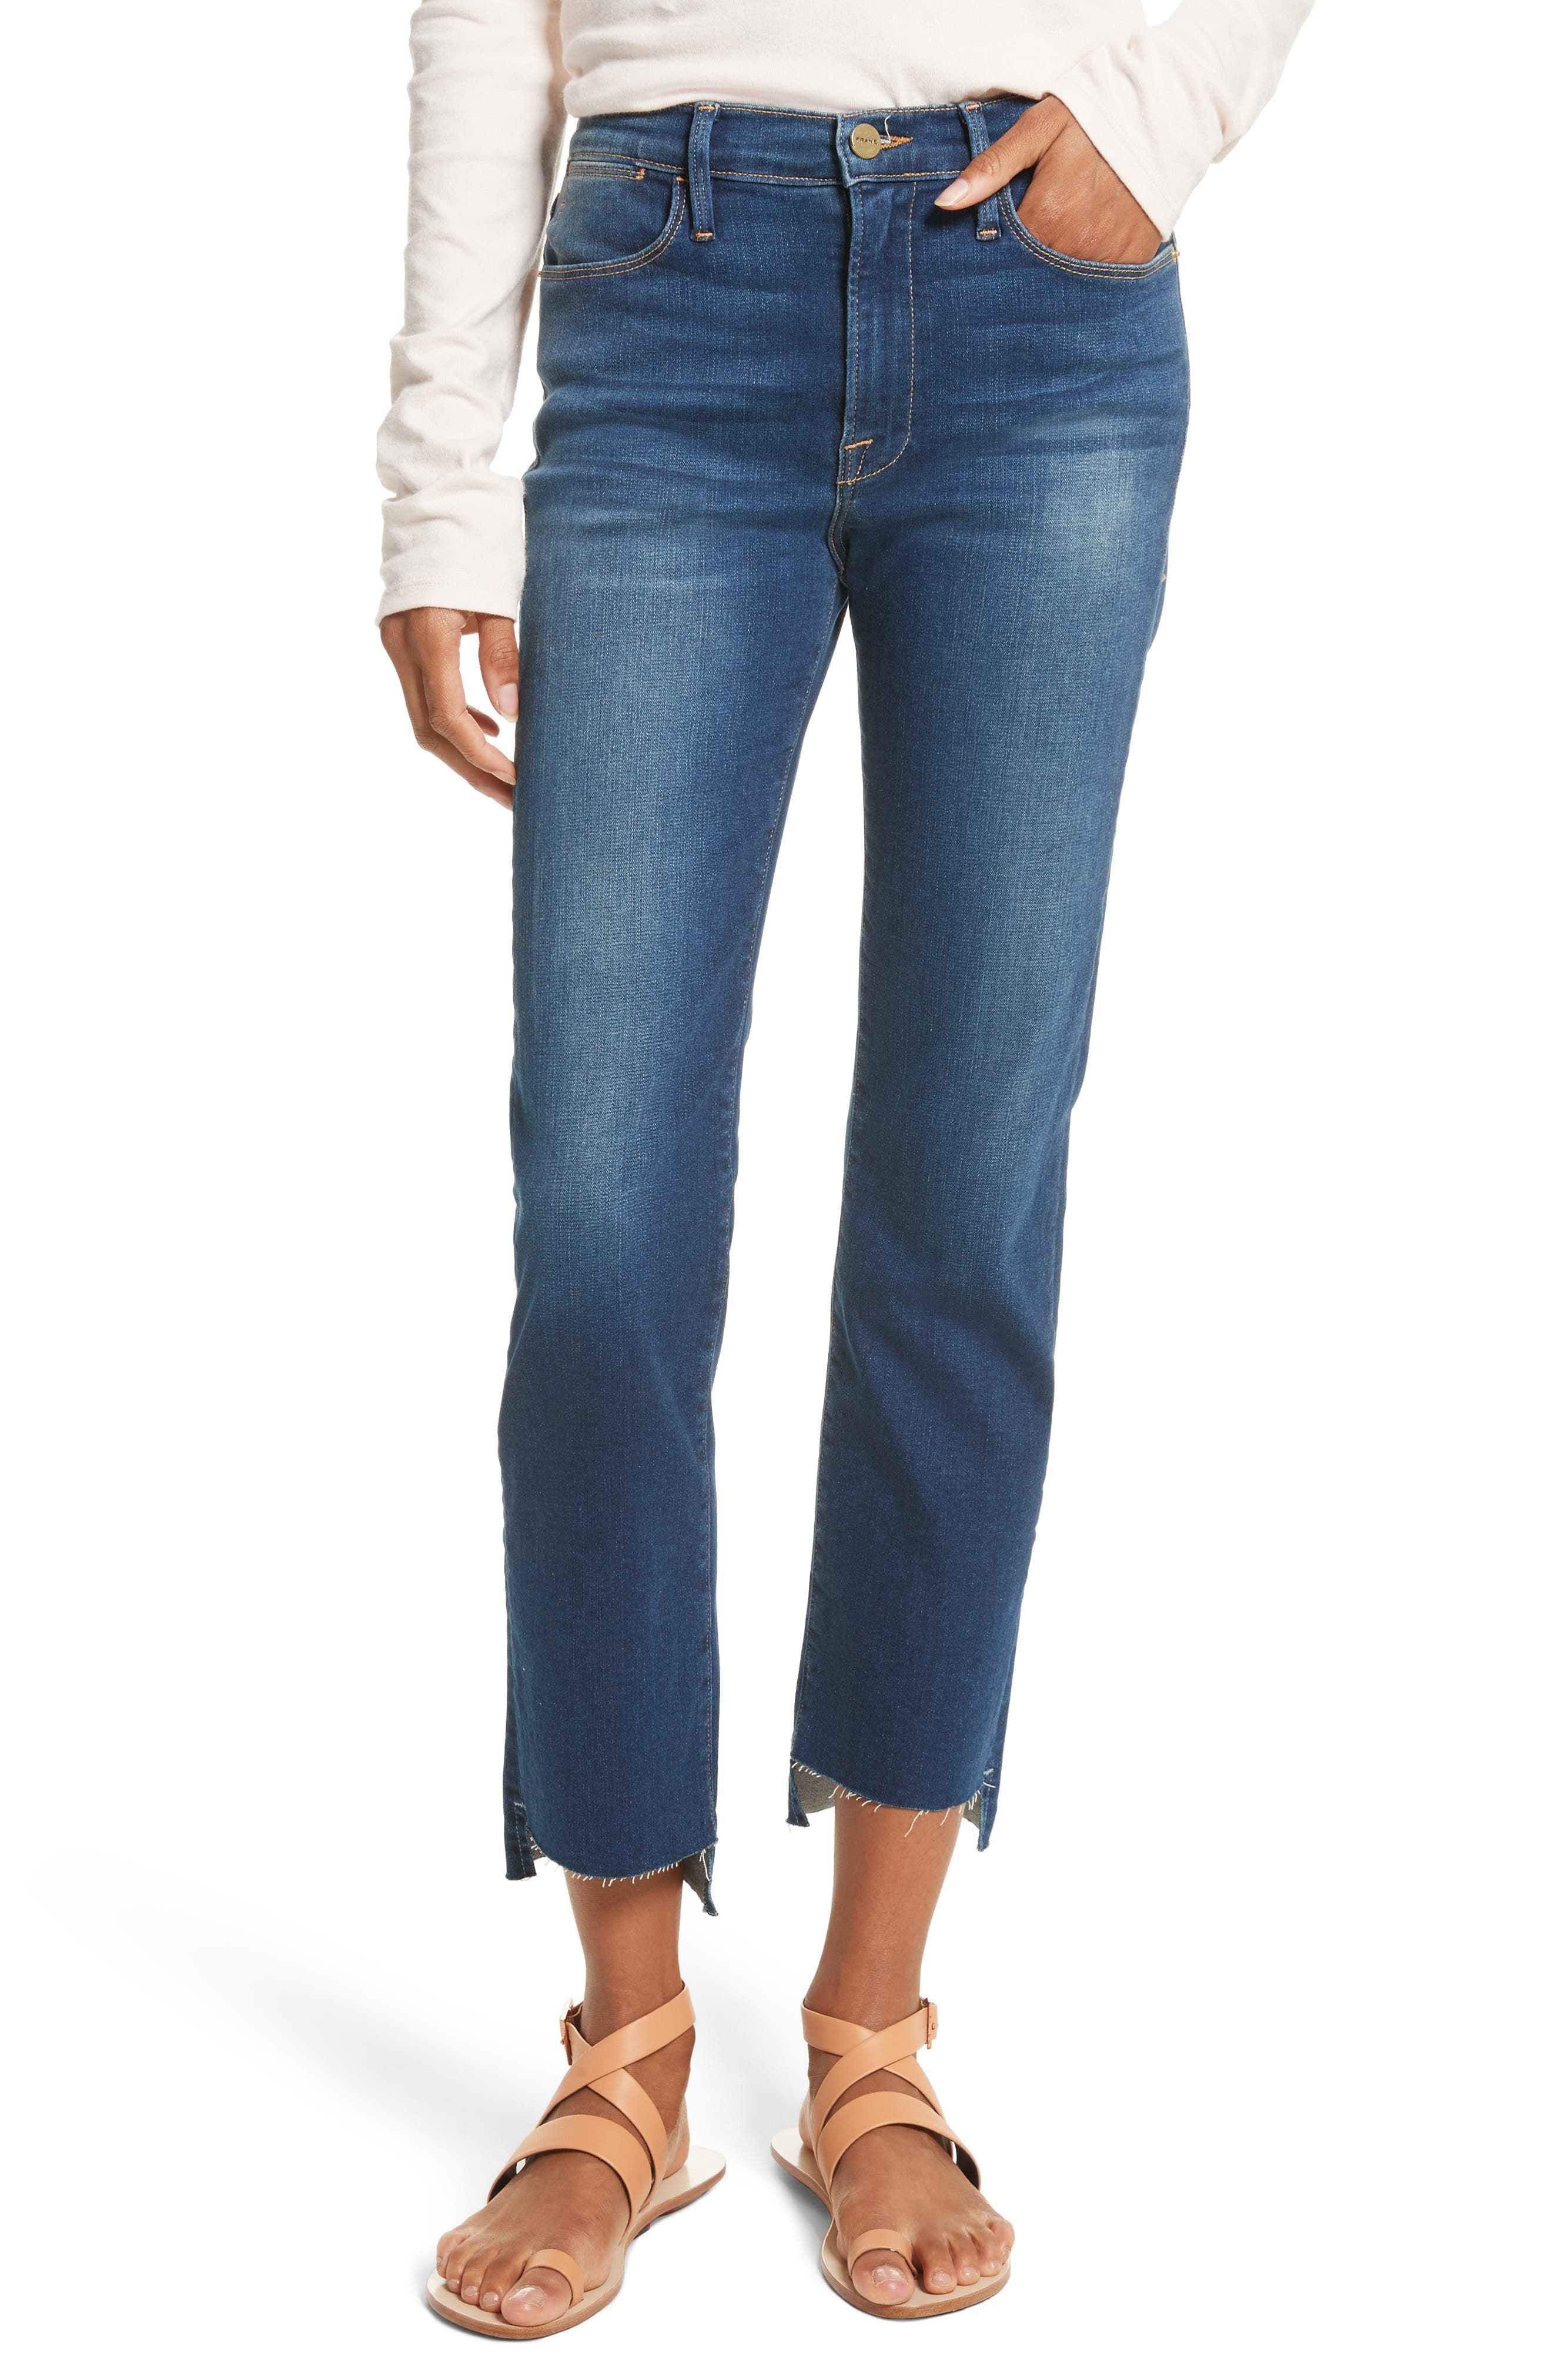 Le High Straight High Waist Raw Stagger Jeans,                         Main,                         color, 401